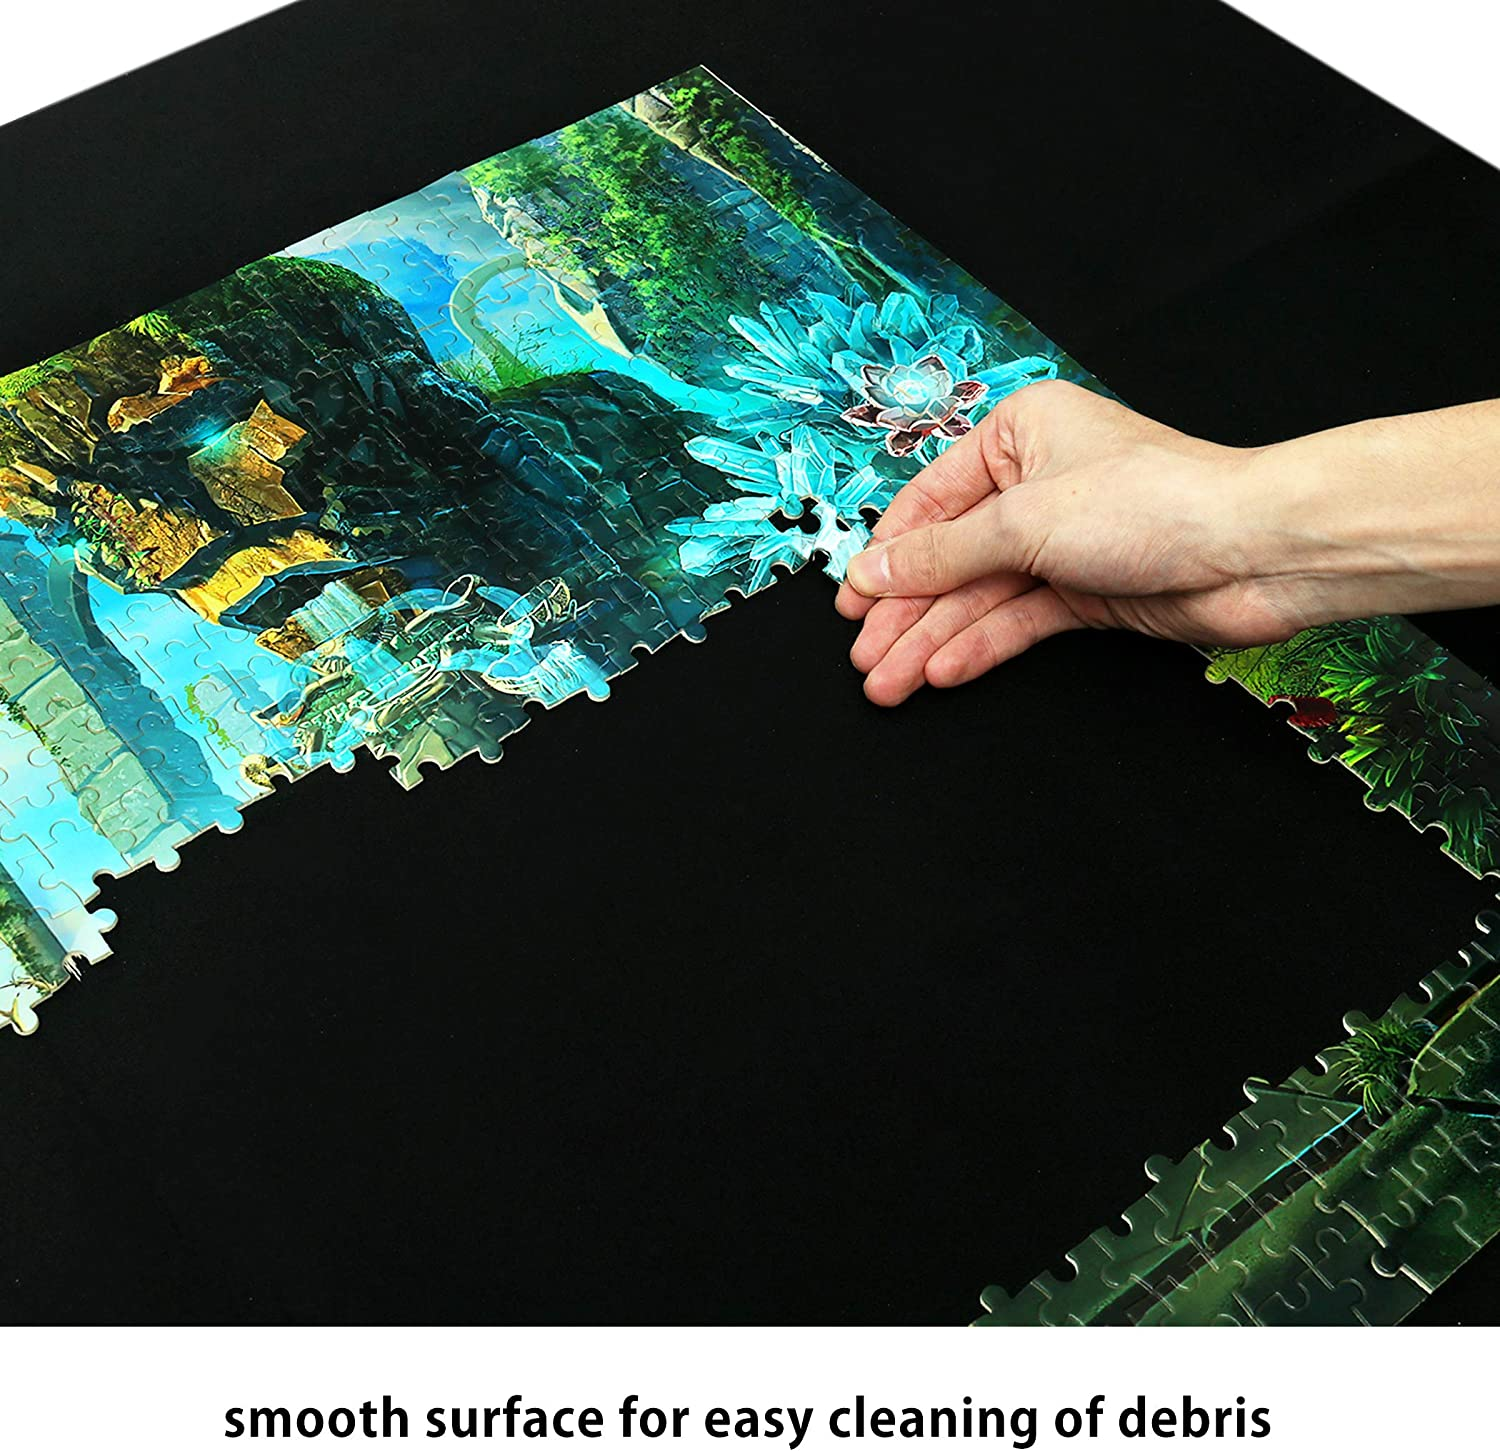 Lavievert 2mm Thick Neoprene Double-Sided Black /& Khaki Jigsaw Puzzle Roll Mat Puzzle Storage Saver with Nonwoven Storage Bag /& Plastic Cylinder for up to 1500 pcs